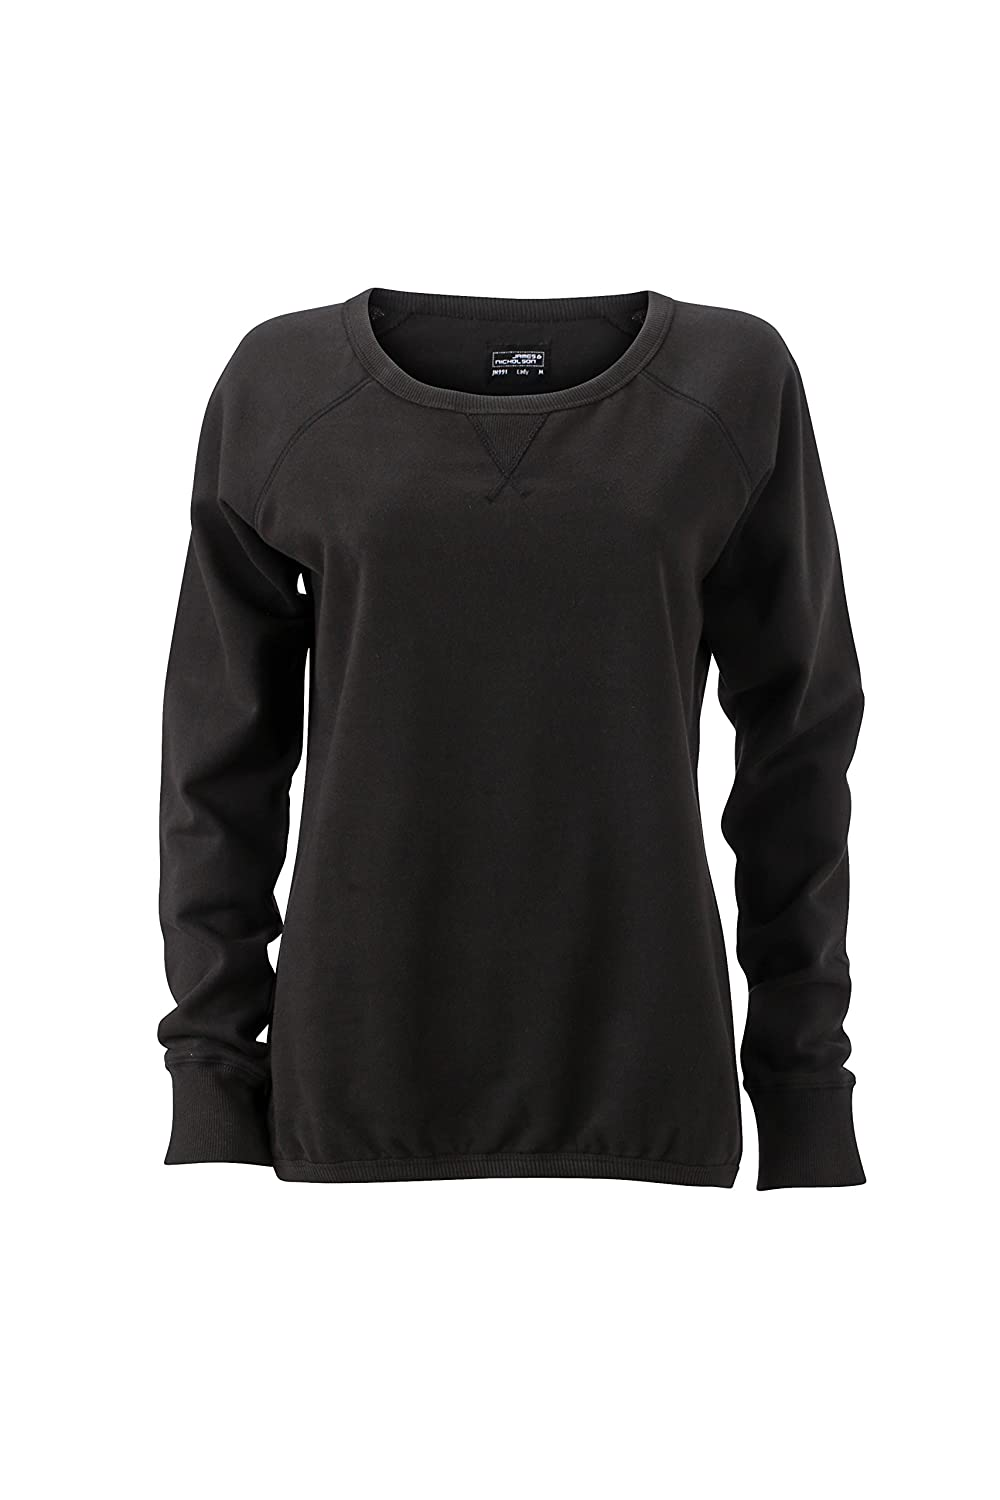 James /& Nicholson Damen Basic Sweat Sweatshirt